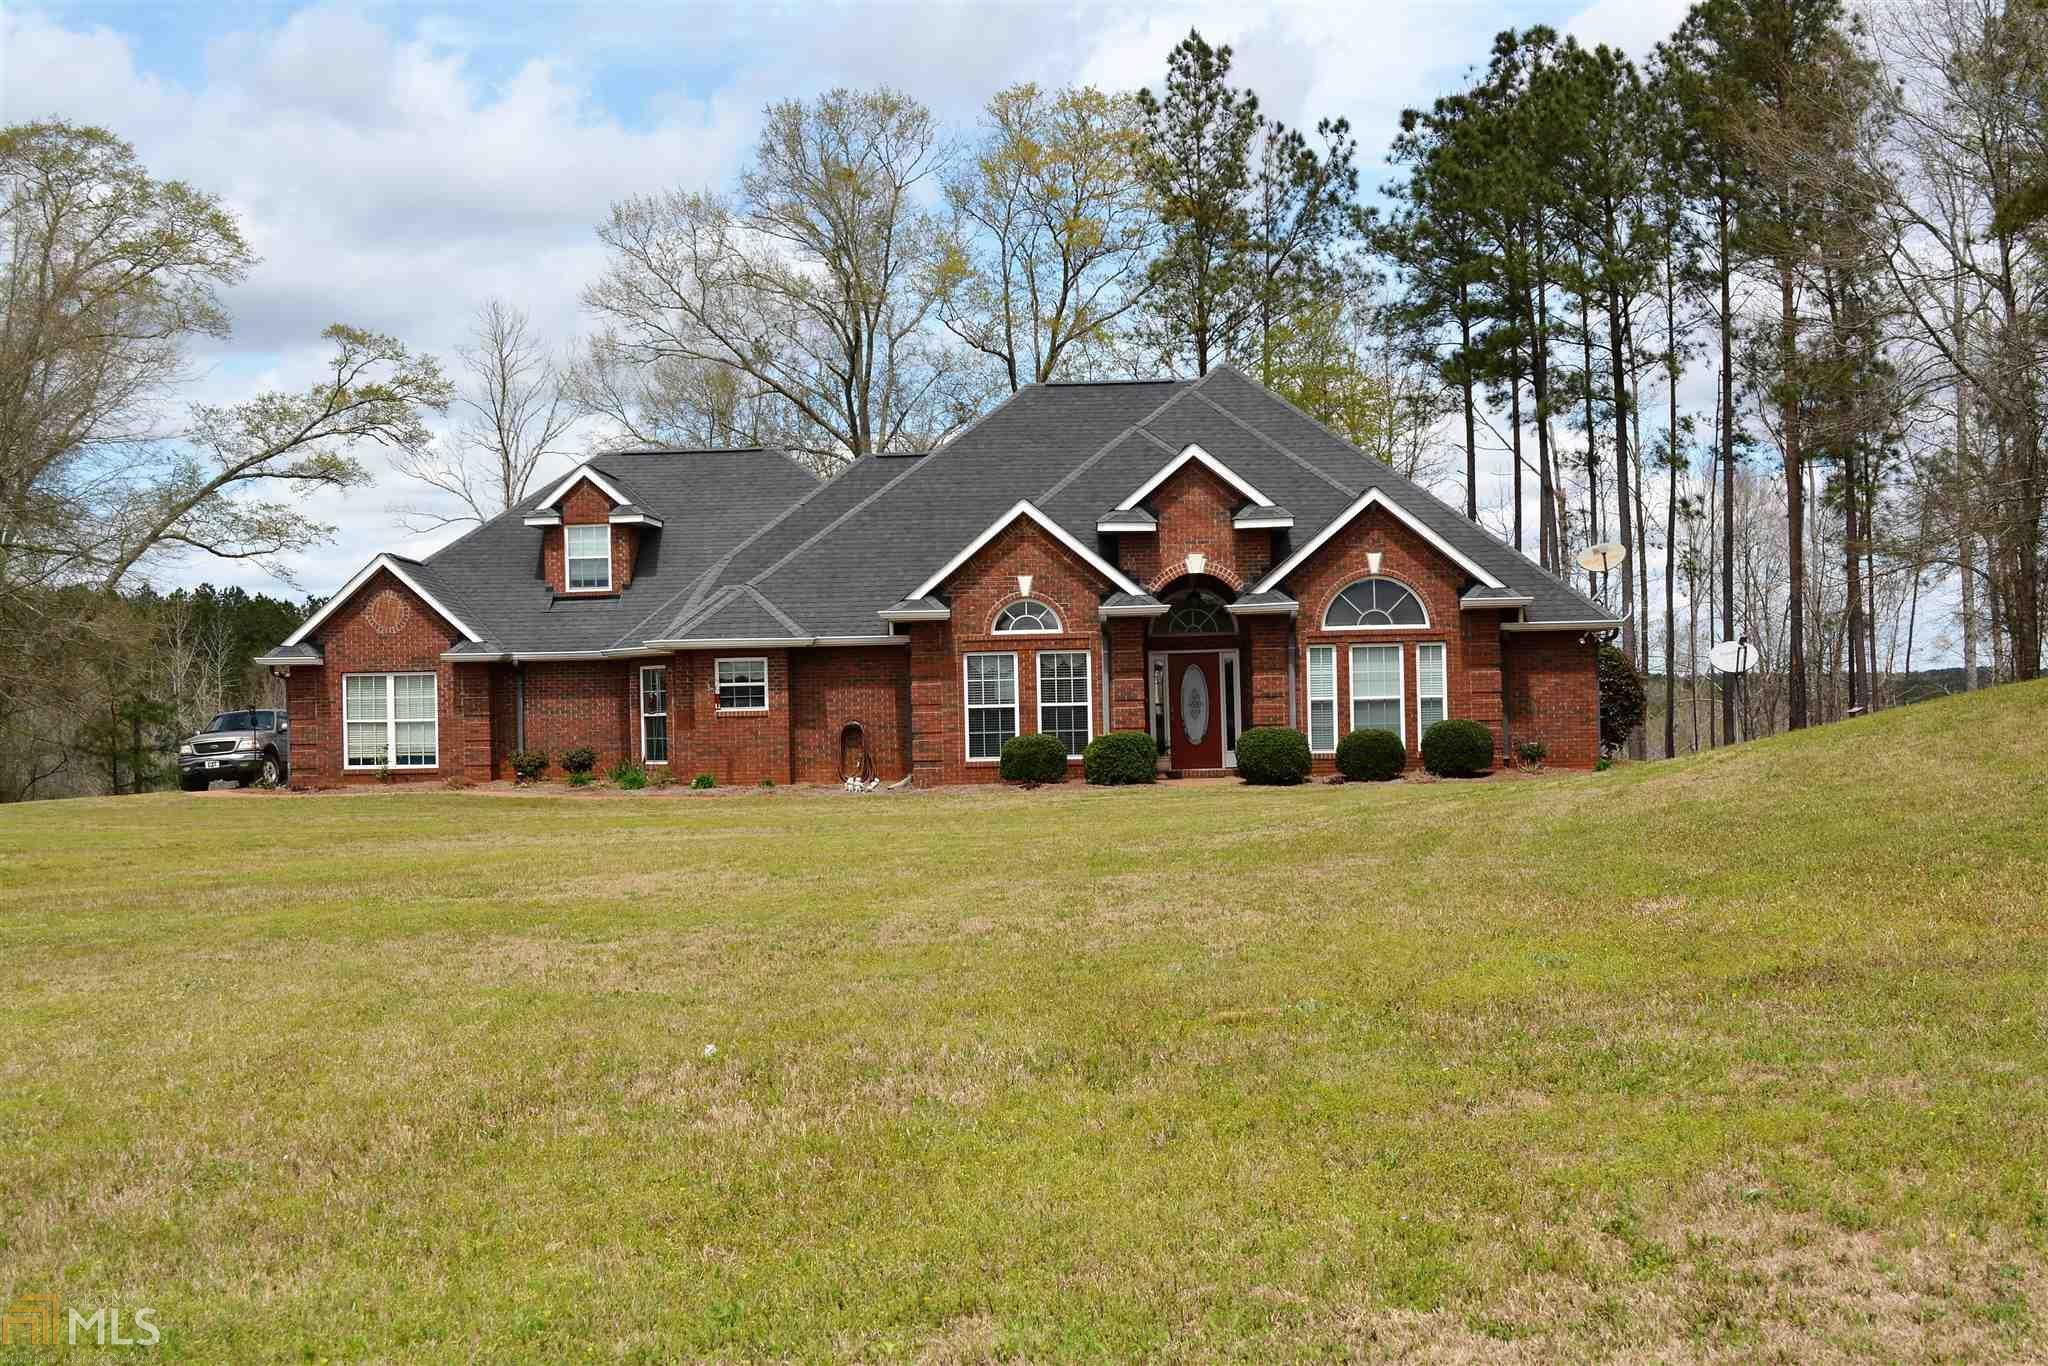 159 ely calloway rd west point ga 31833 mls 8351941 for Calloway homes